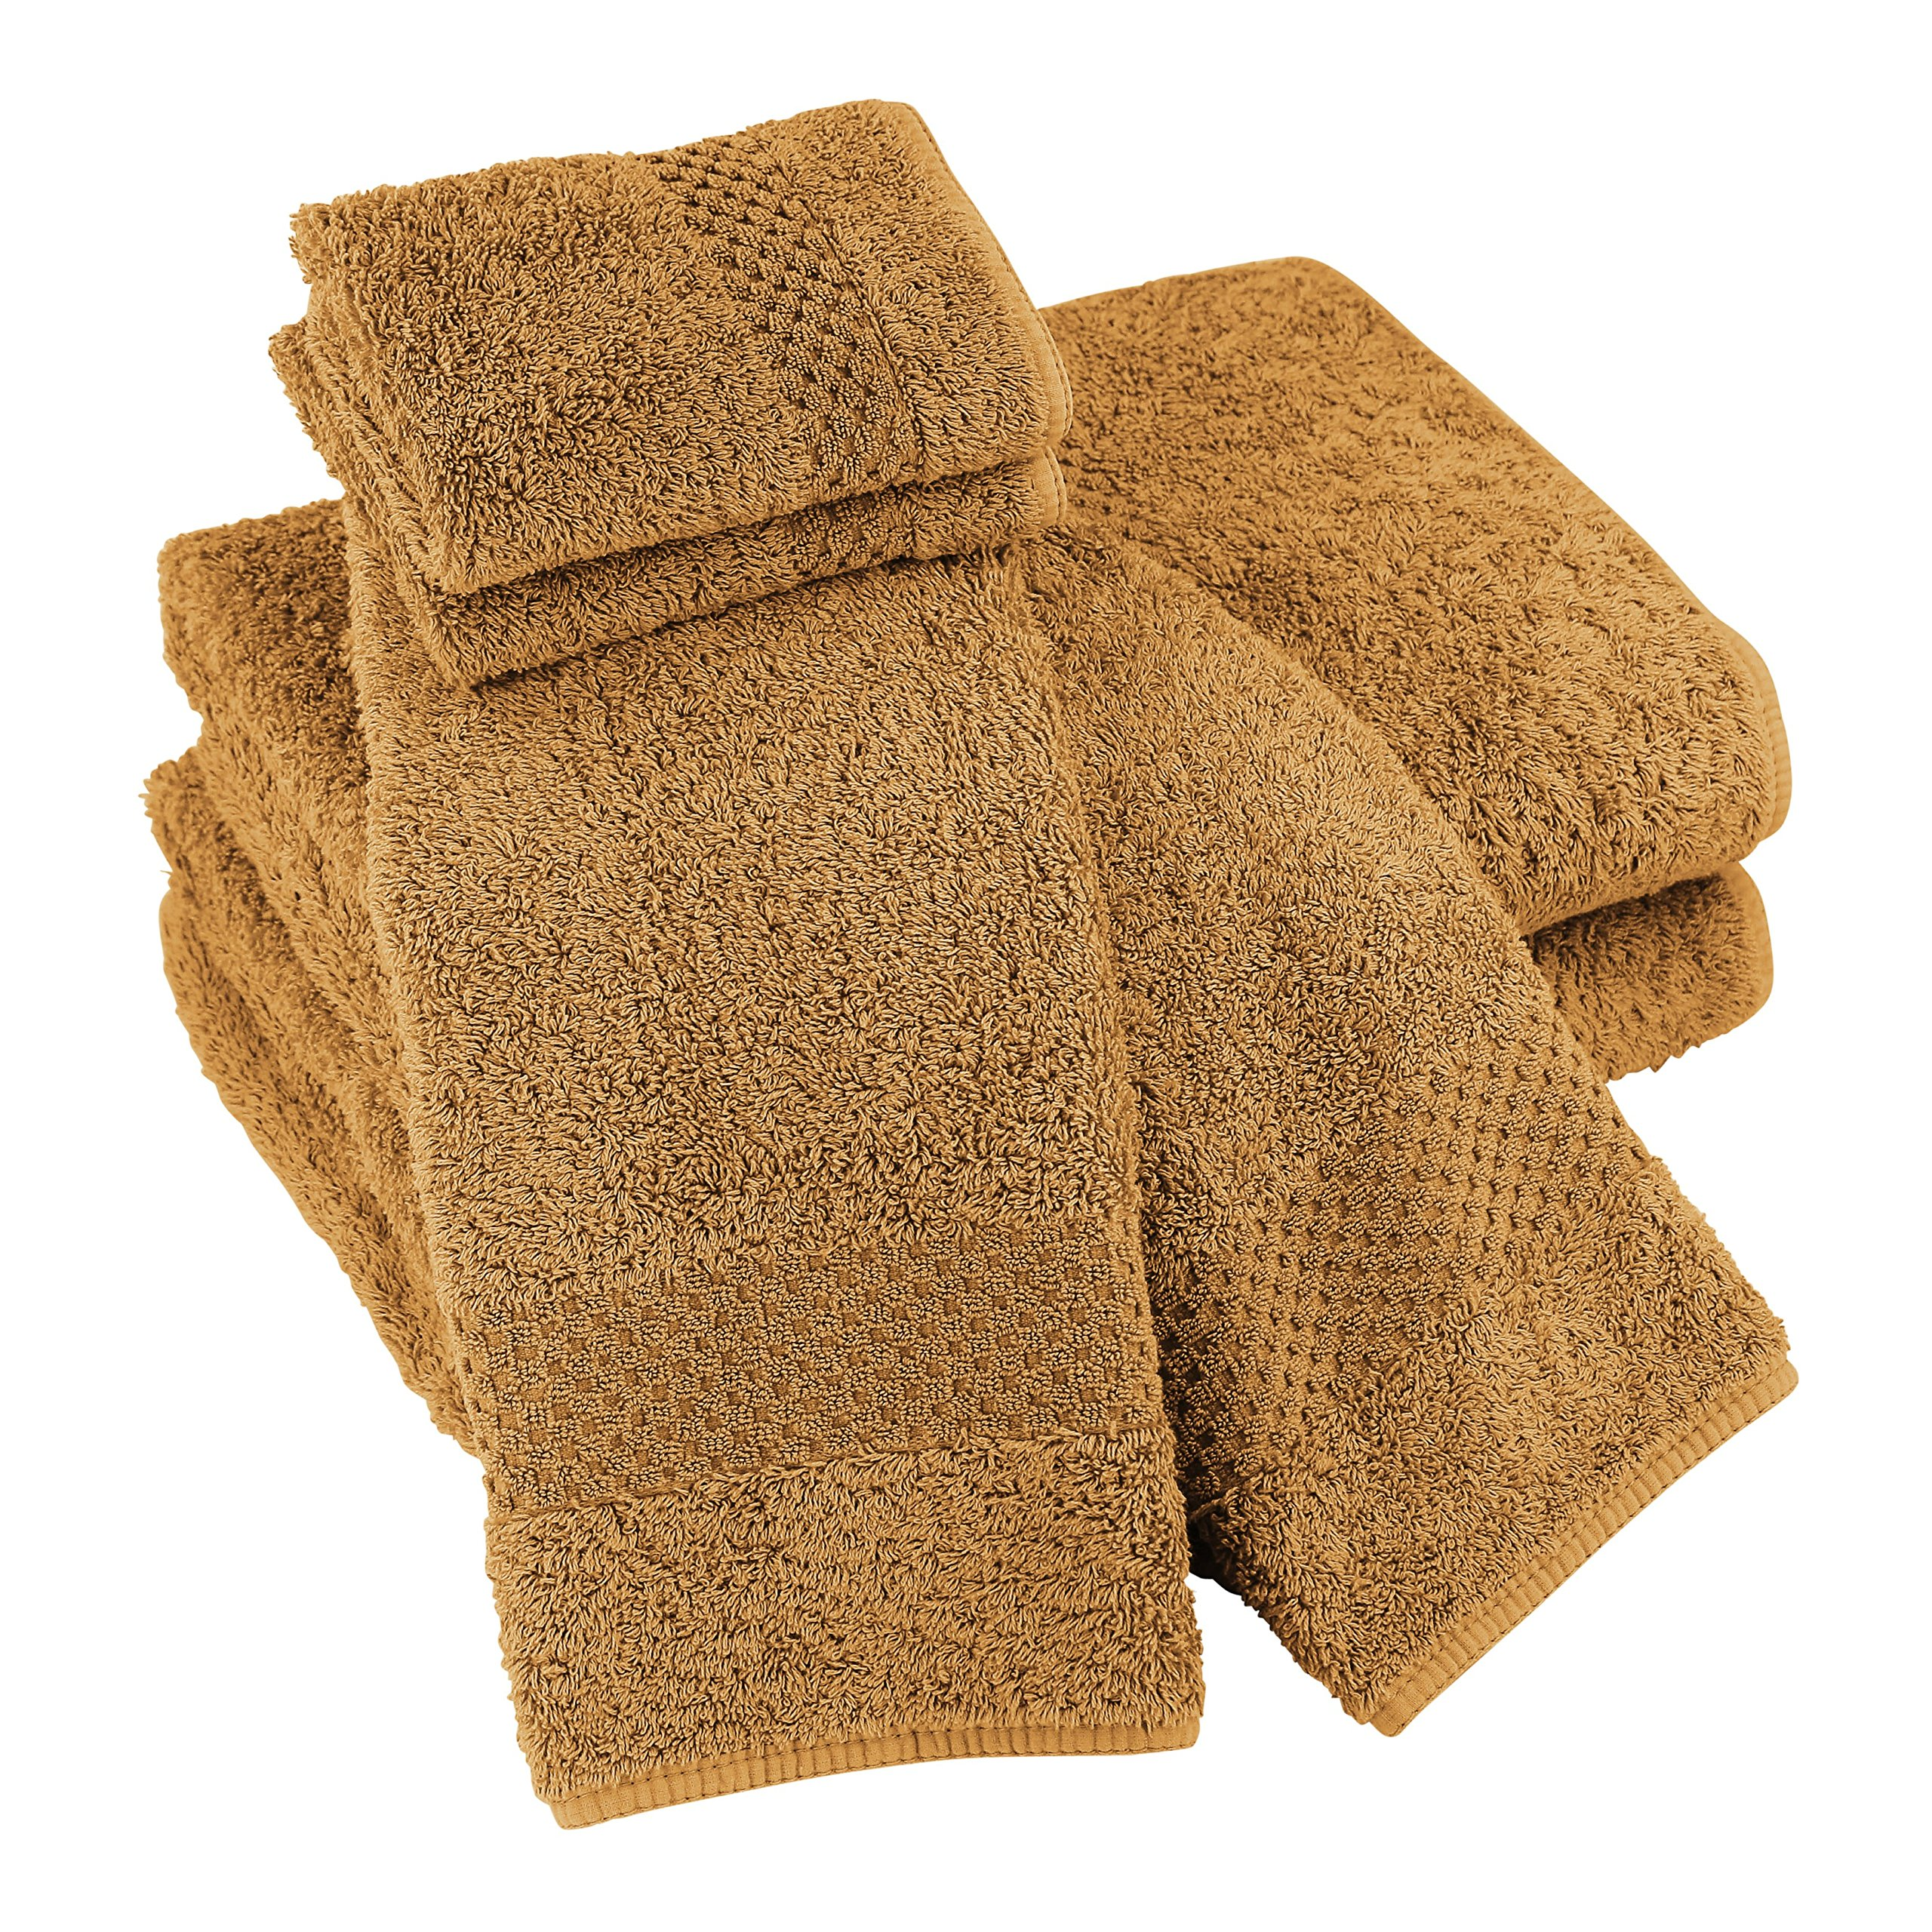 Luxor Linens Sylvano Hotel 100% Giza Combed Egyptian Cotton 700 GSM Luxury Solid 6-Piece Spa Towel Sets - Durable, Plush & Absorbent - Made in Portugal - 15 Colors Available - Golden